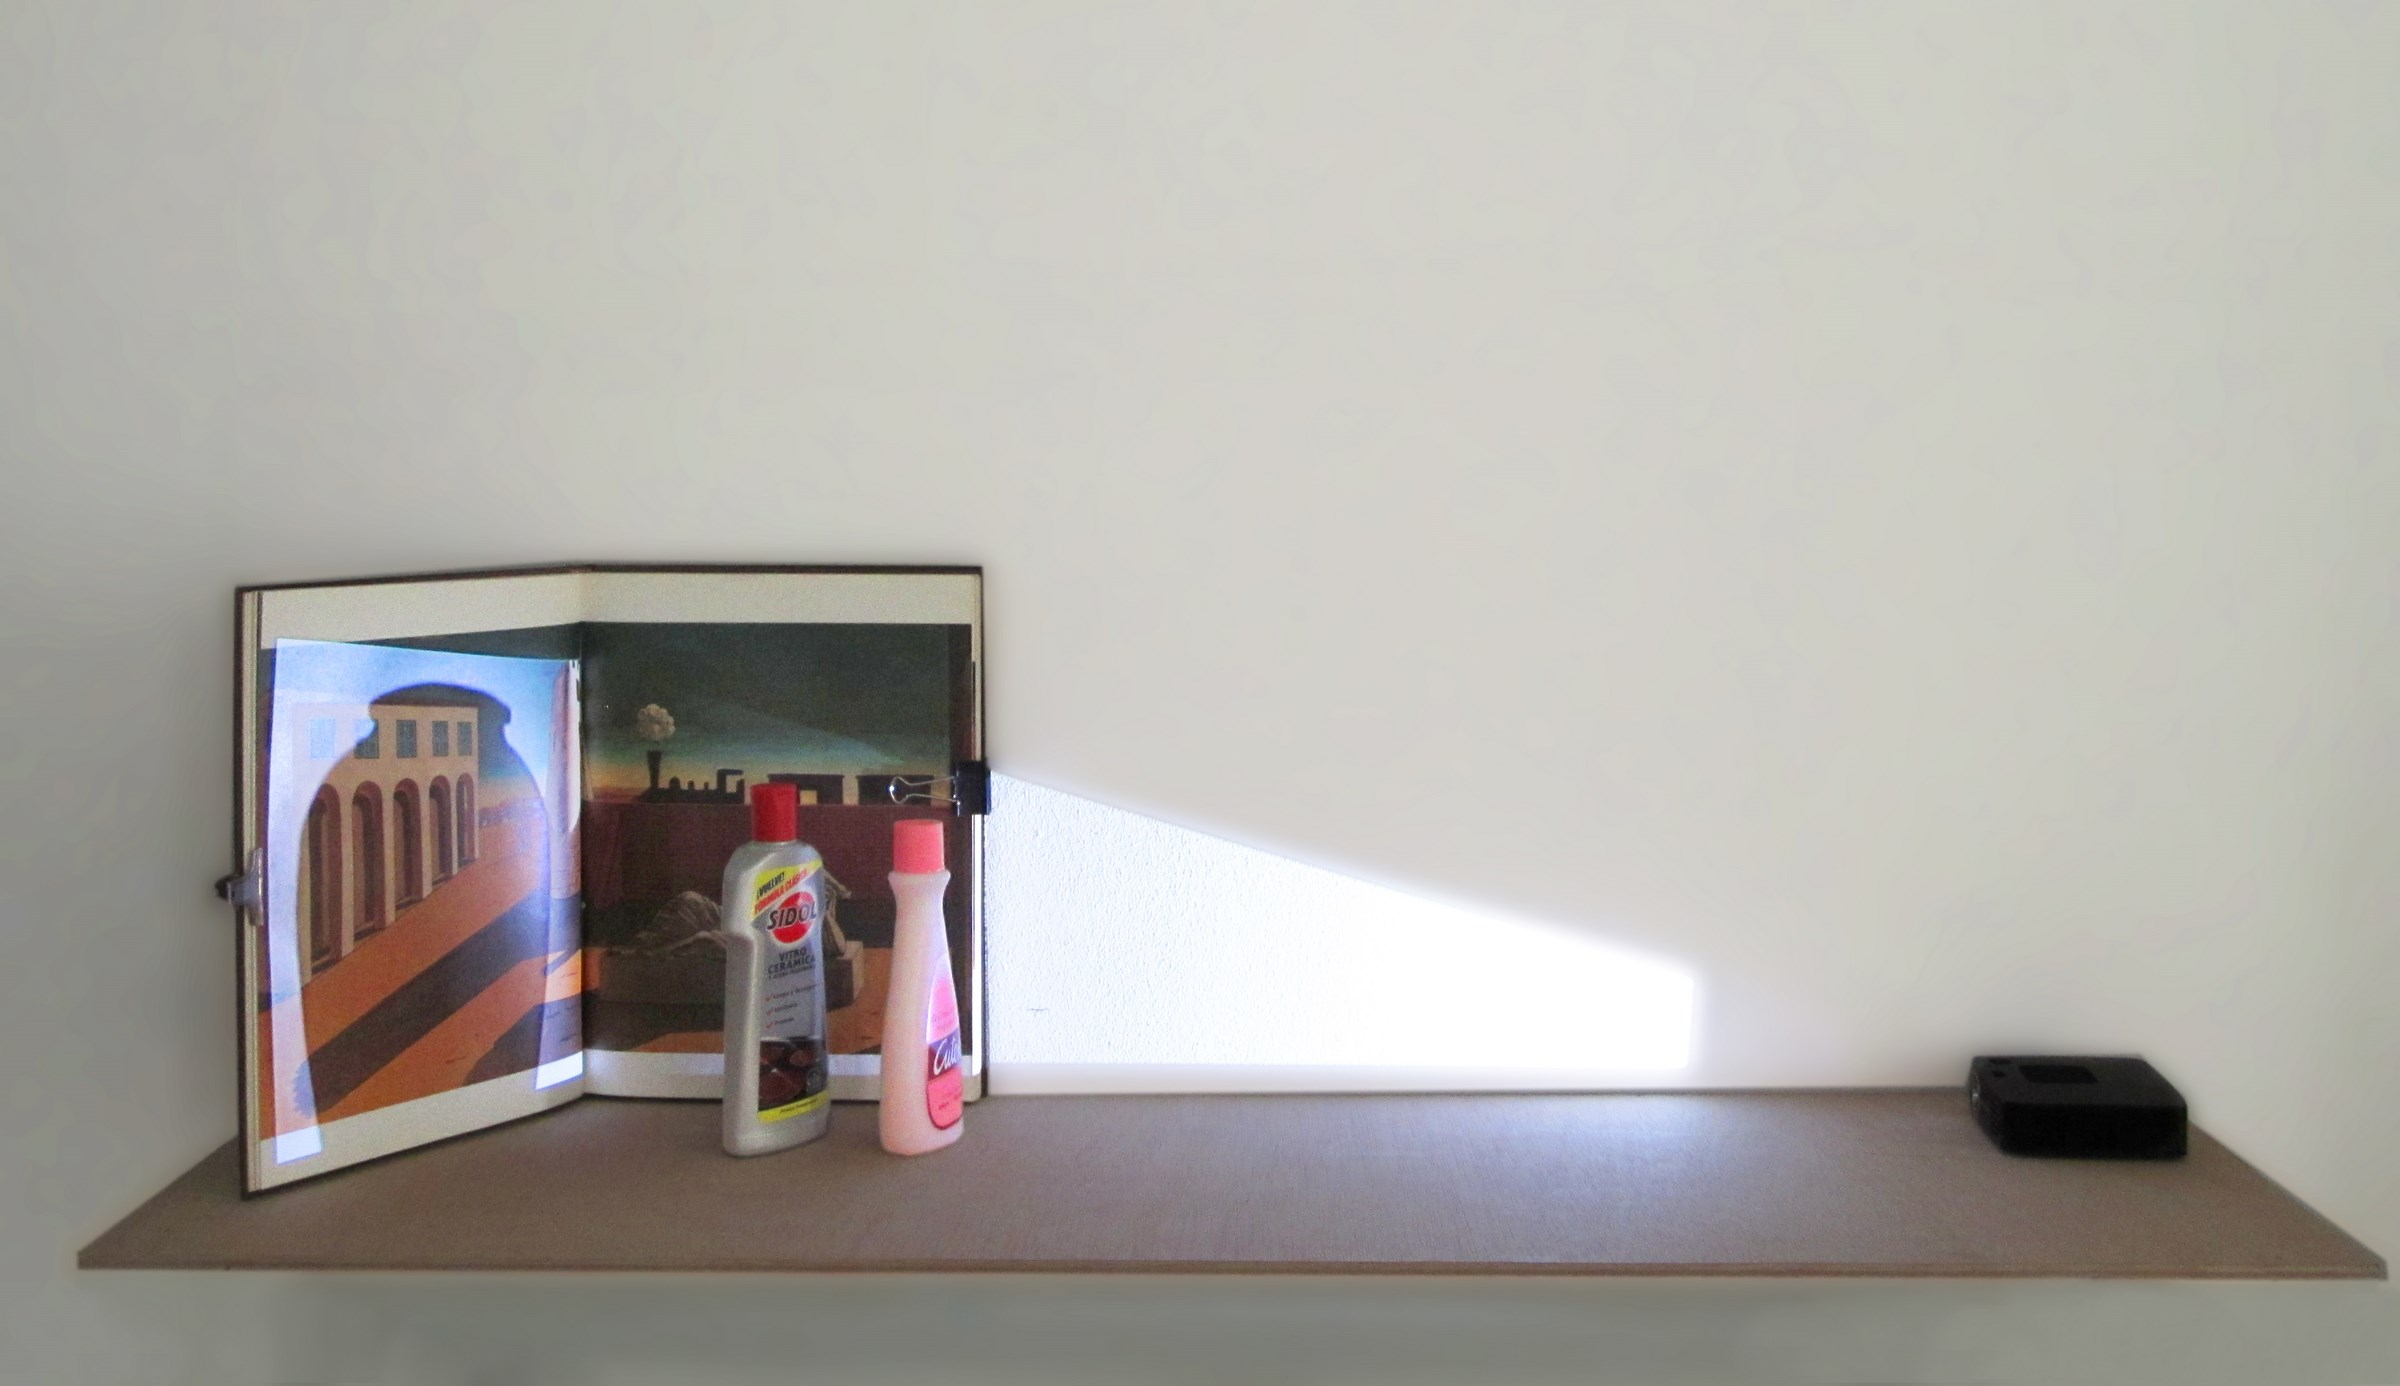 La sombra que habla, (ed.3), 2013, projection, video and packaging